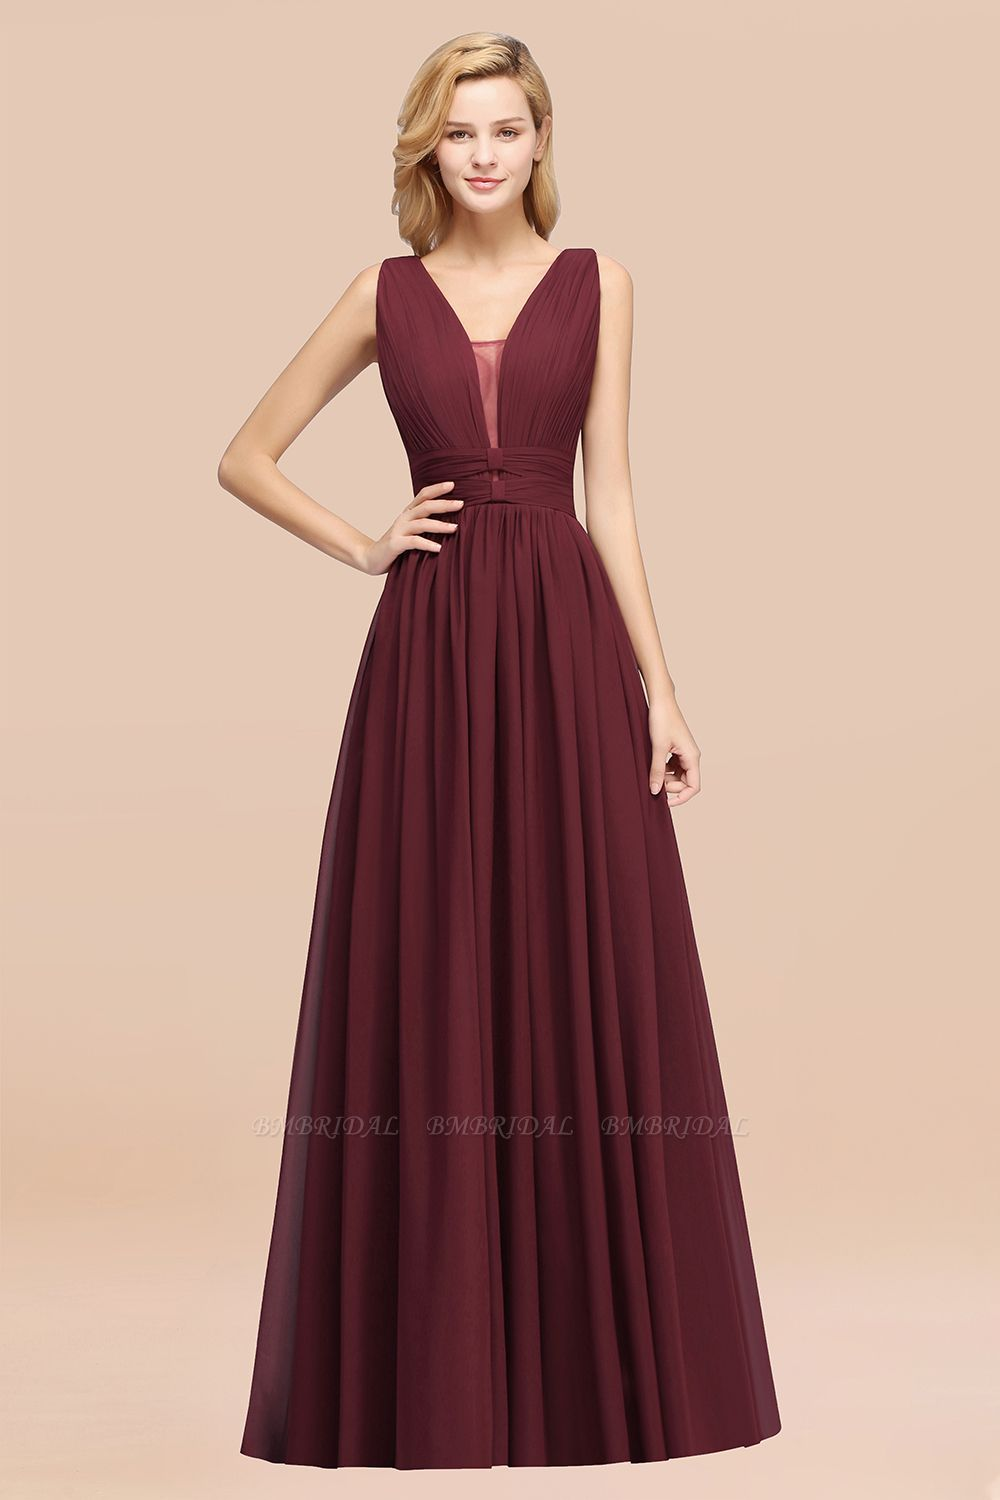 BMbridal Modest Dark Green Long Bridesmaid Dress Deep V-Neck Chiffon Maid of Honor Dress